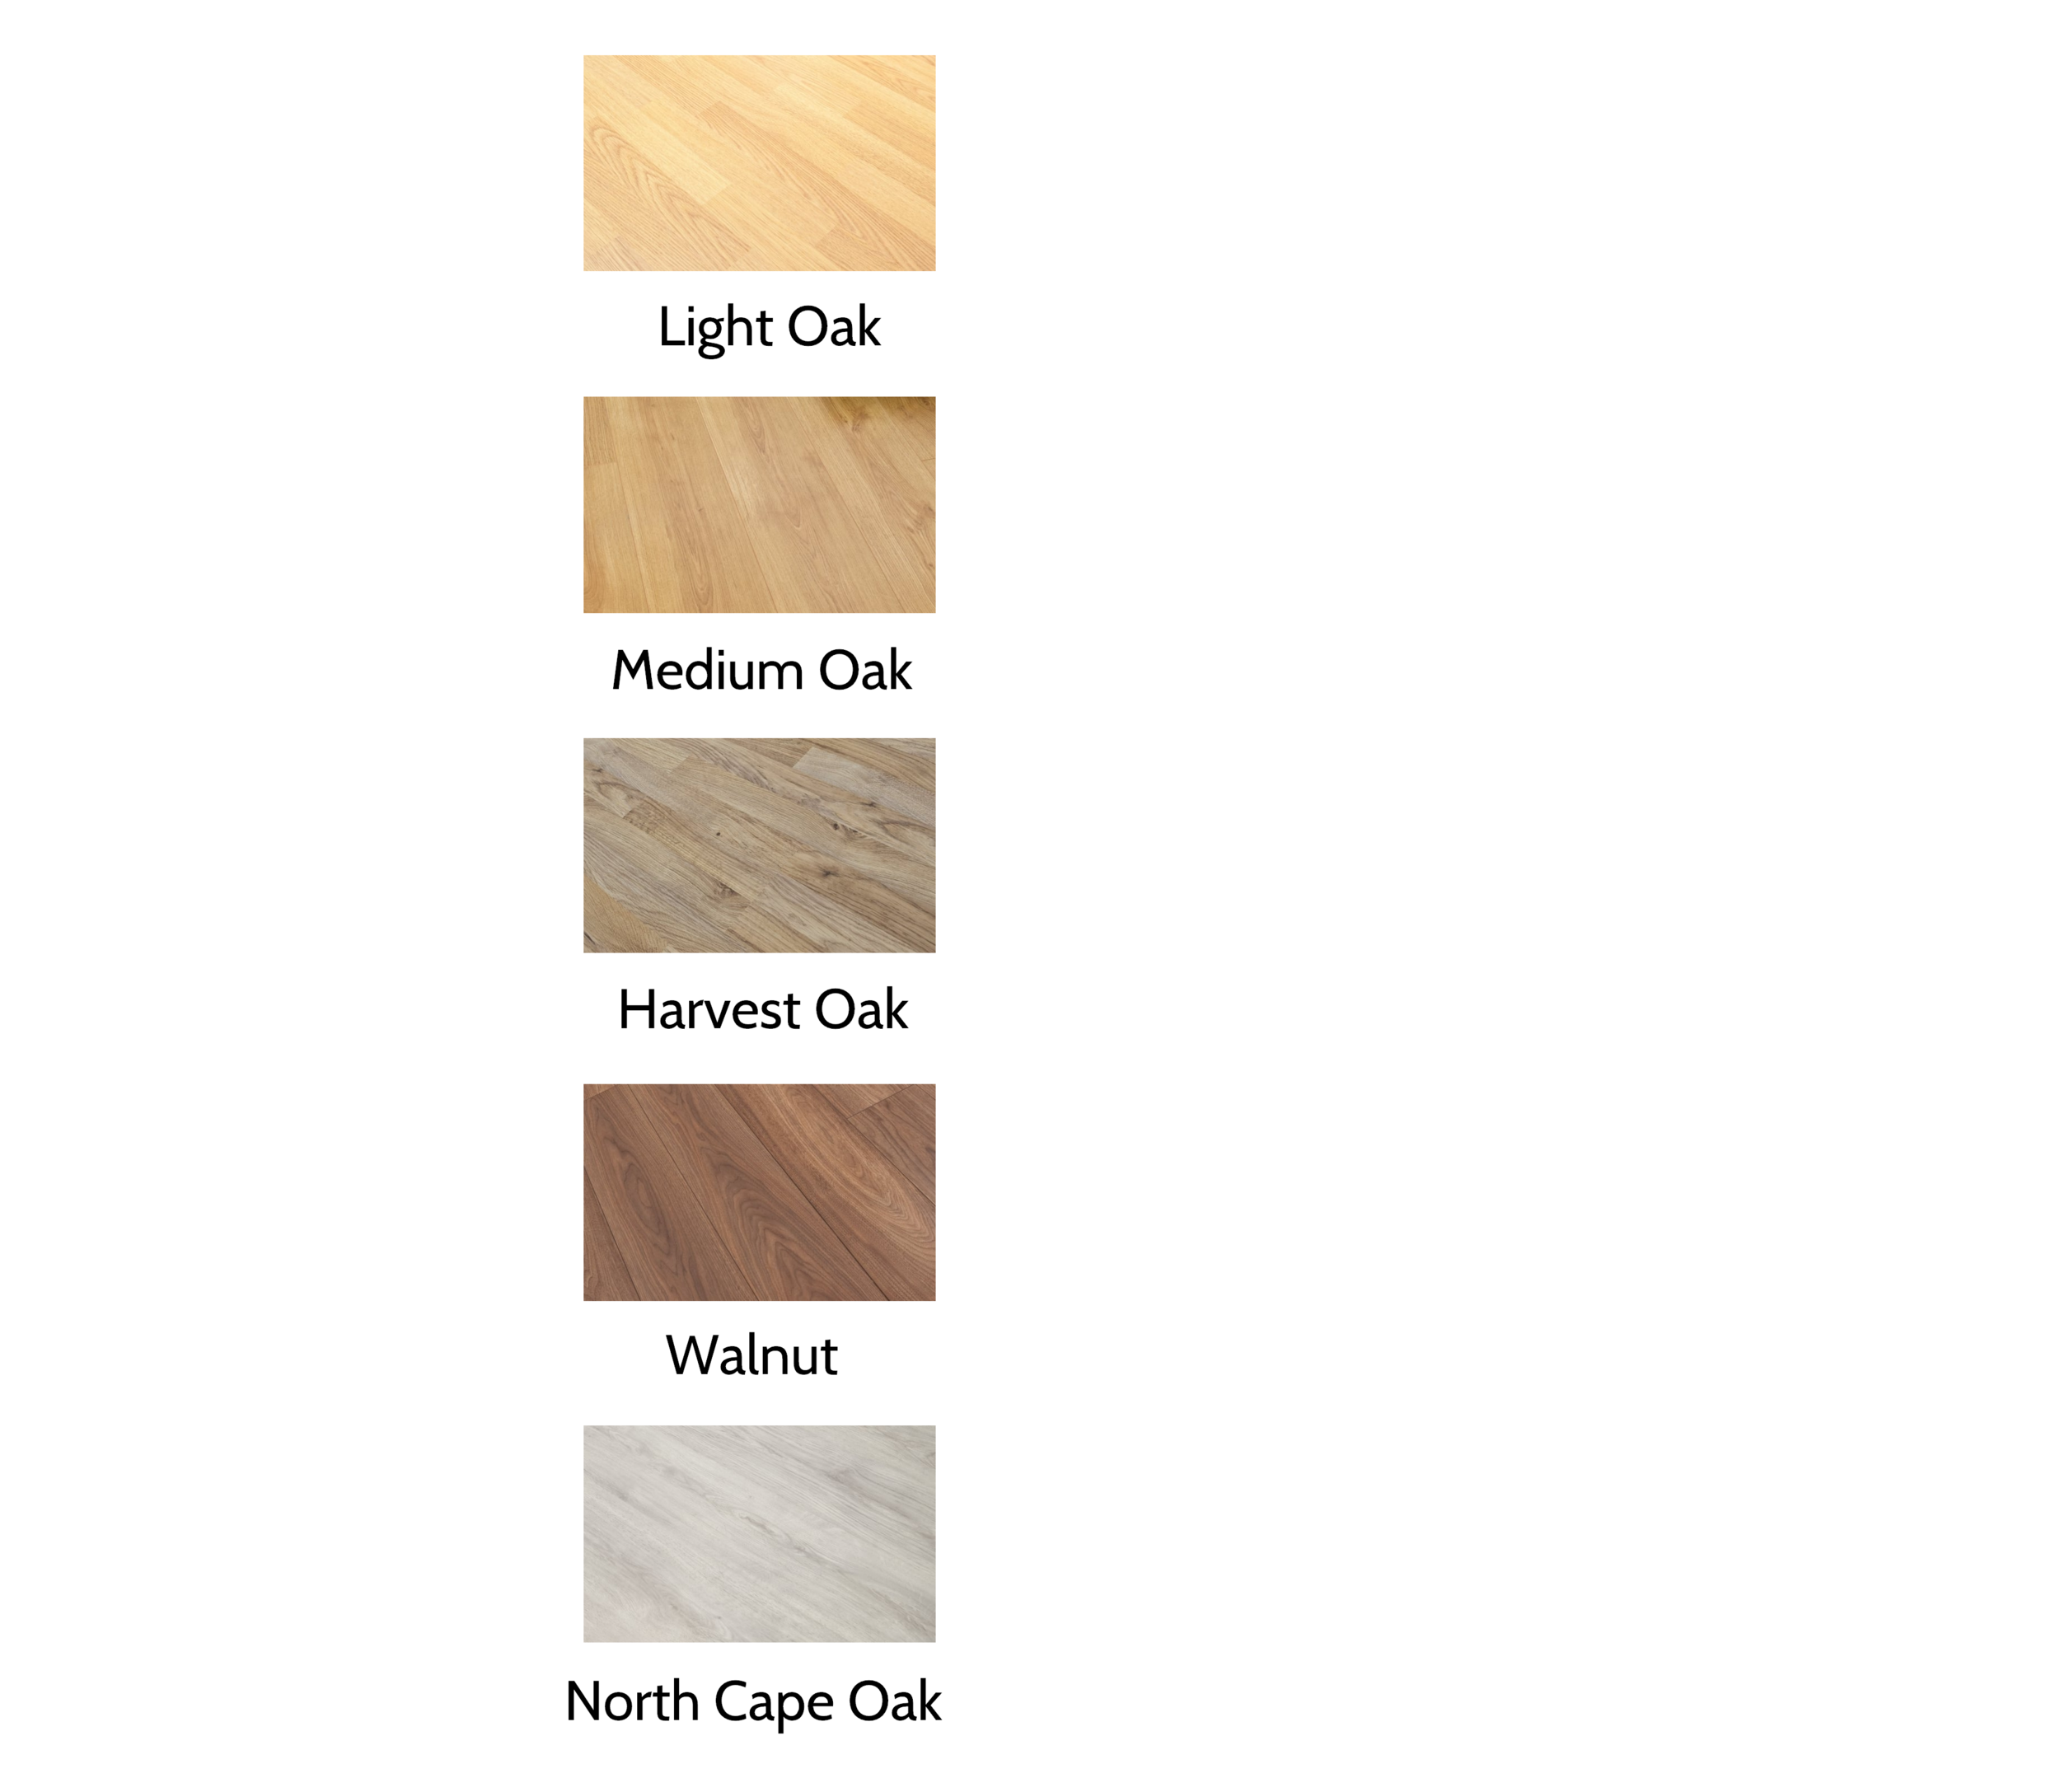 Laminate Flooring Colour Options - As an option, a choice of 5 laminate floor colours, all 7mm thick with great durability and wear-ability. Laminate flooring complements most garden room interiors, with a manufacturer's 15-year residential warranty.All laminate flooring packages come complete with foam underlay and white bullnose skirting throughout.Exclude this option if you wish to fit alternative flooring.